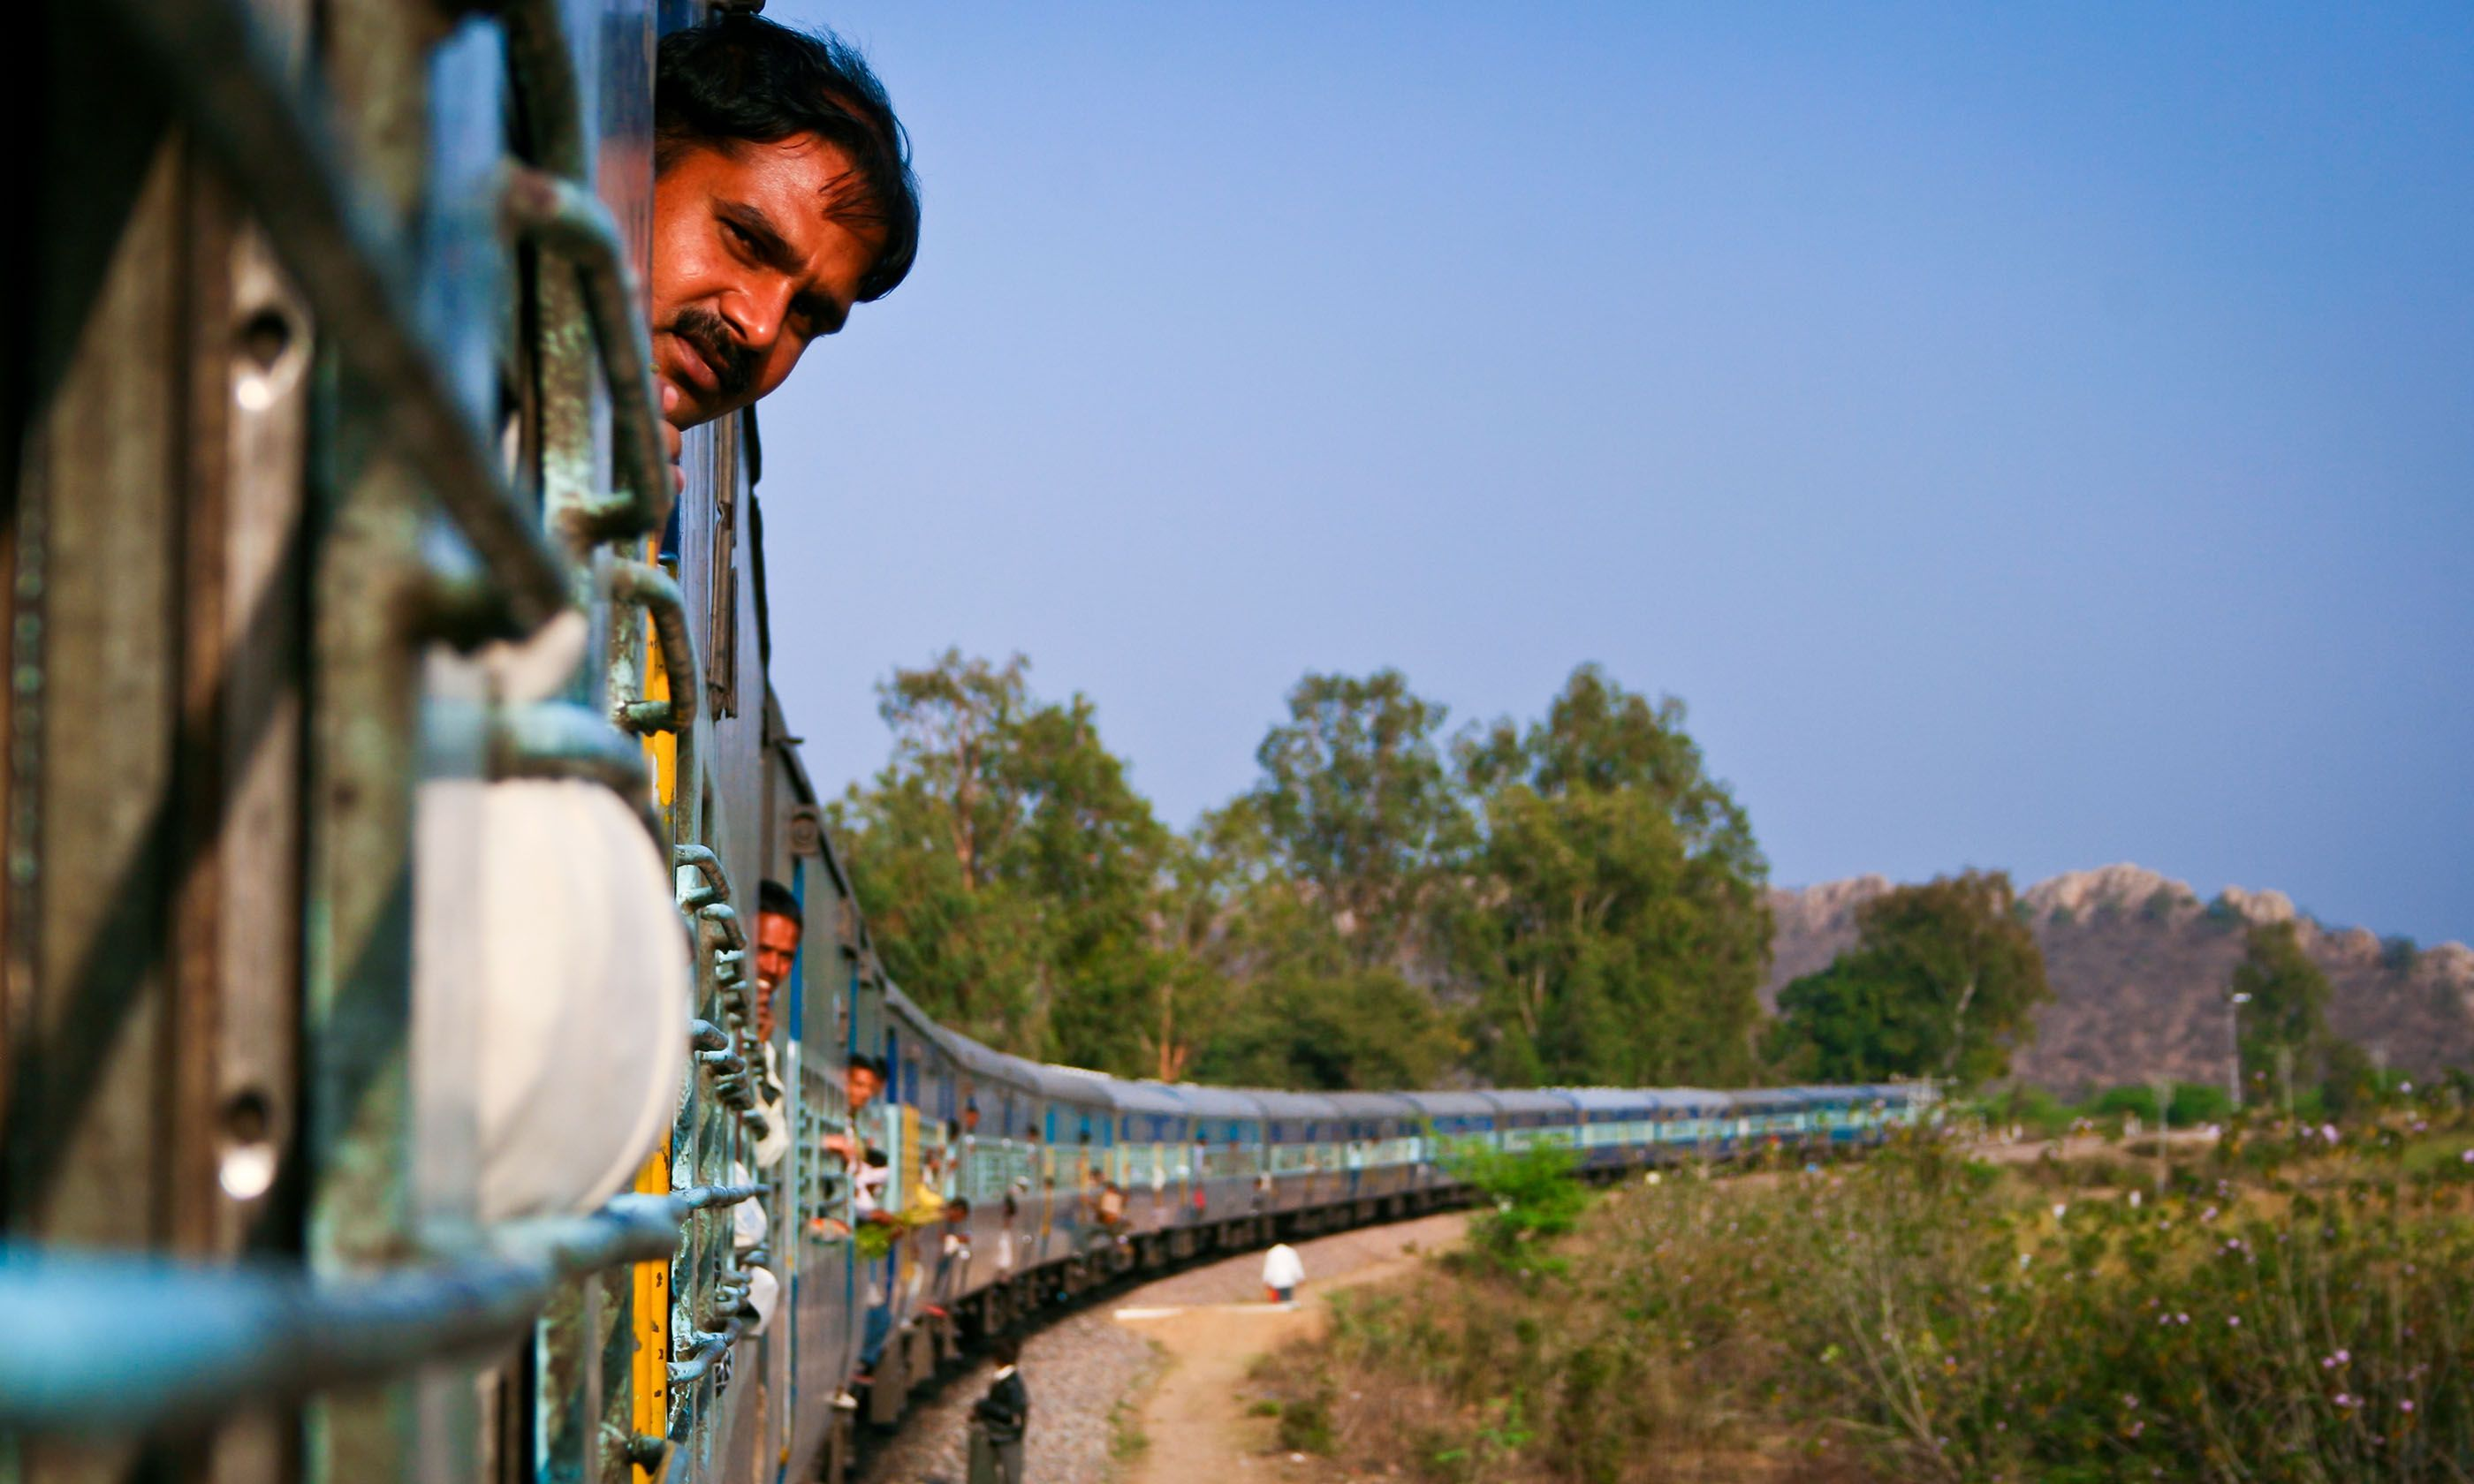 Man riding train in India (Shutterstock.com)